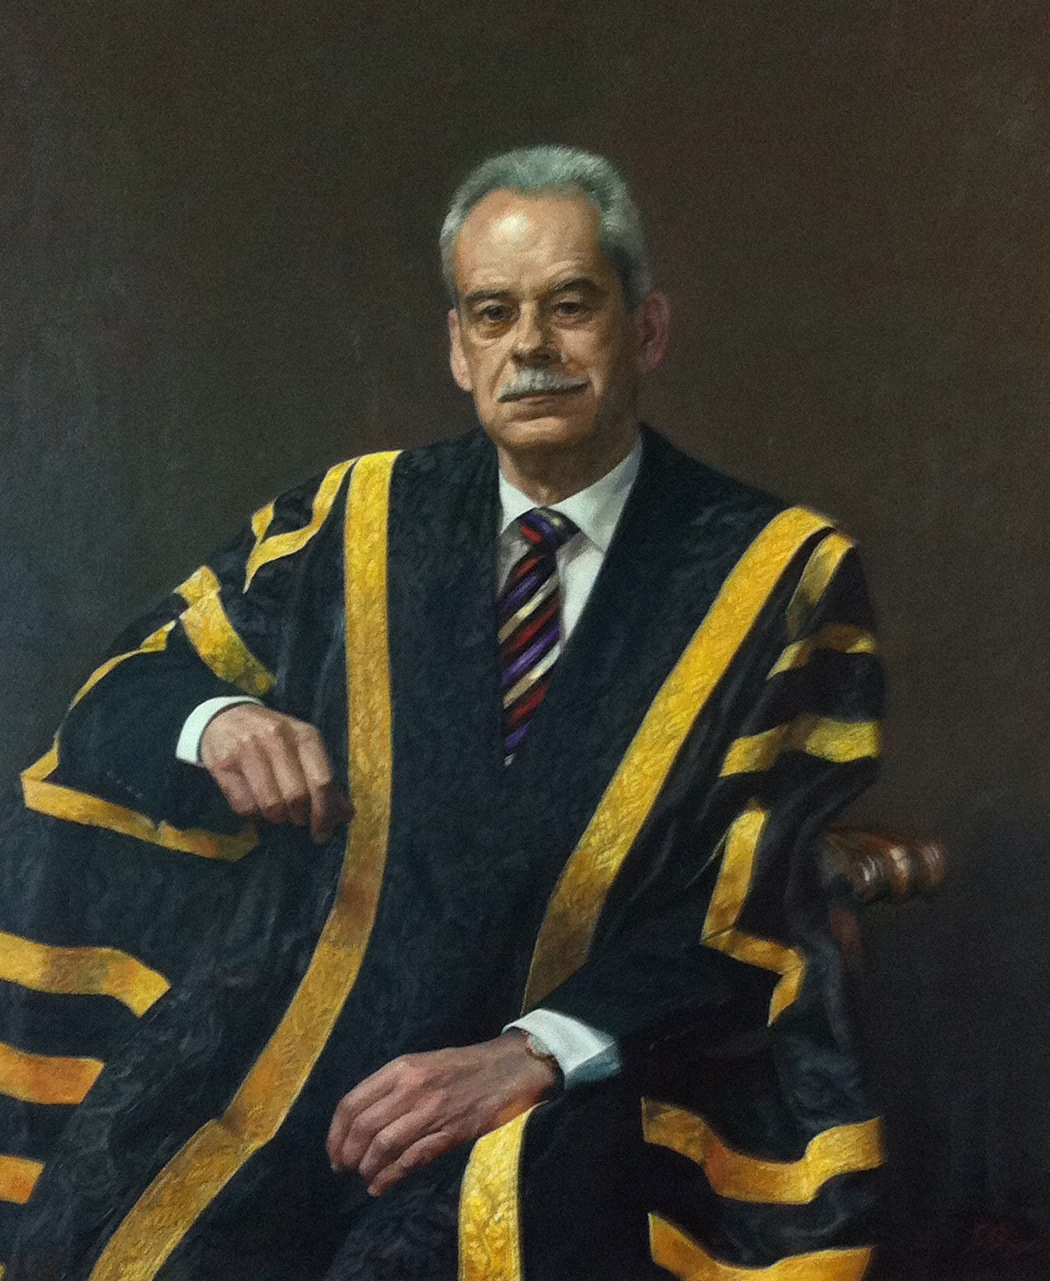 Portrait of Professor Ian Goulter by Jiawei Shen